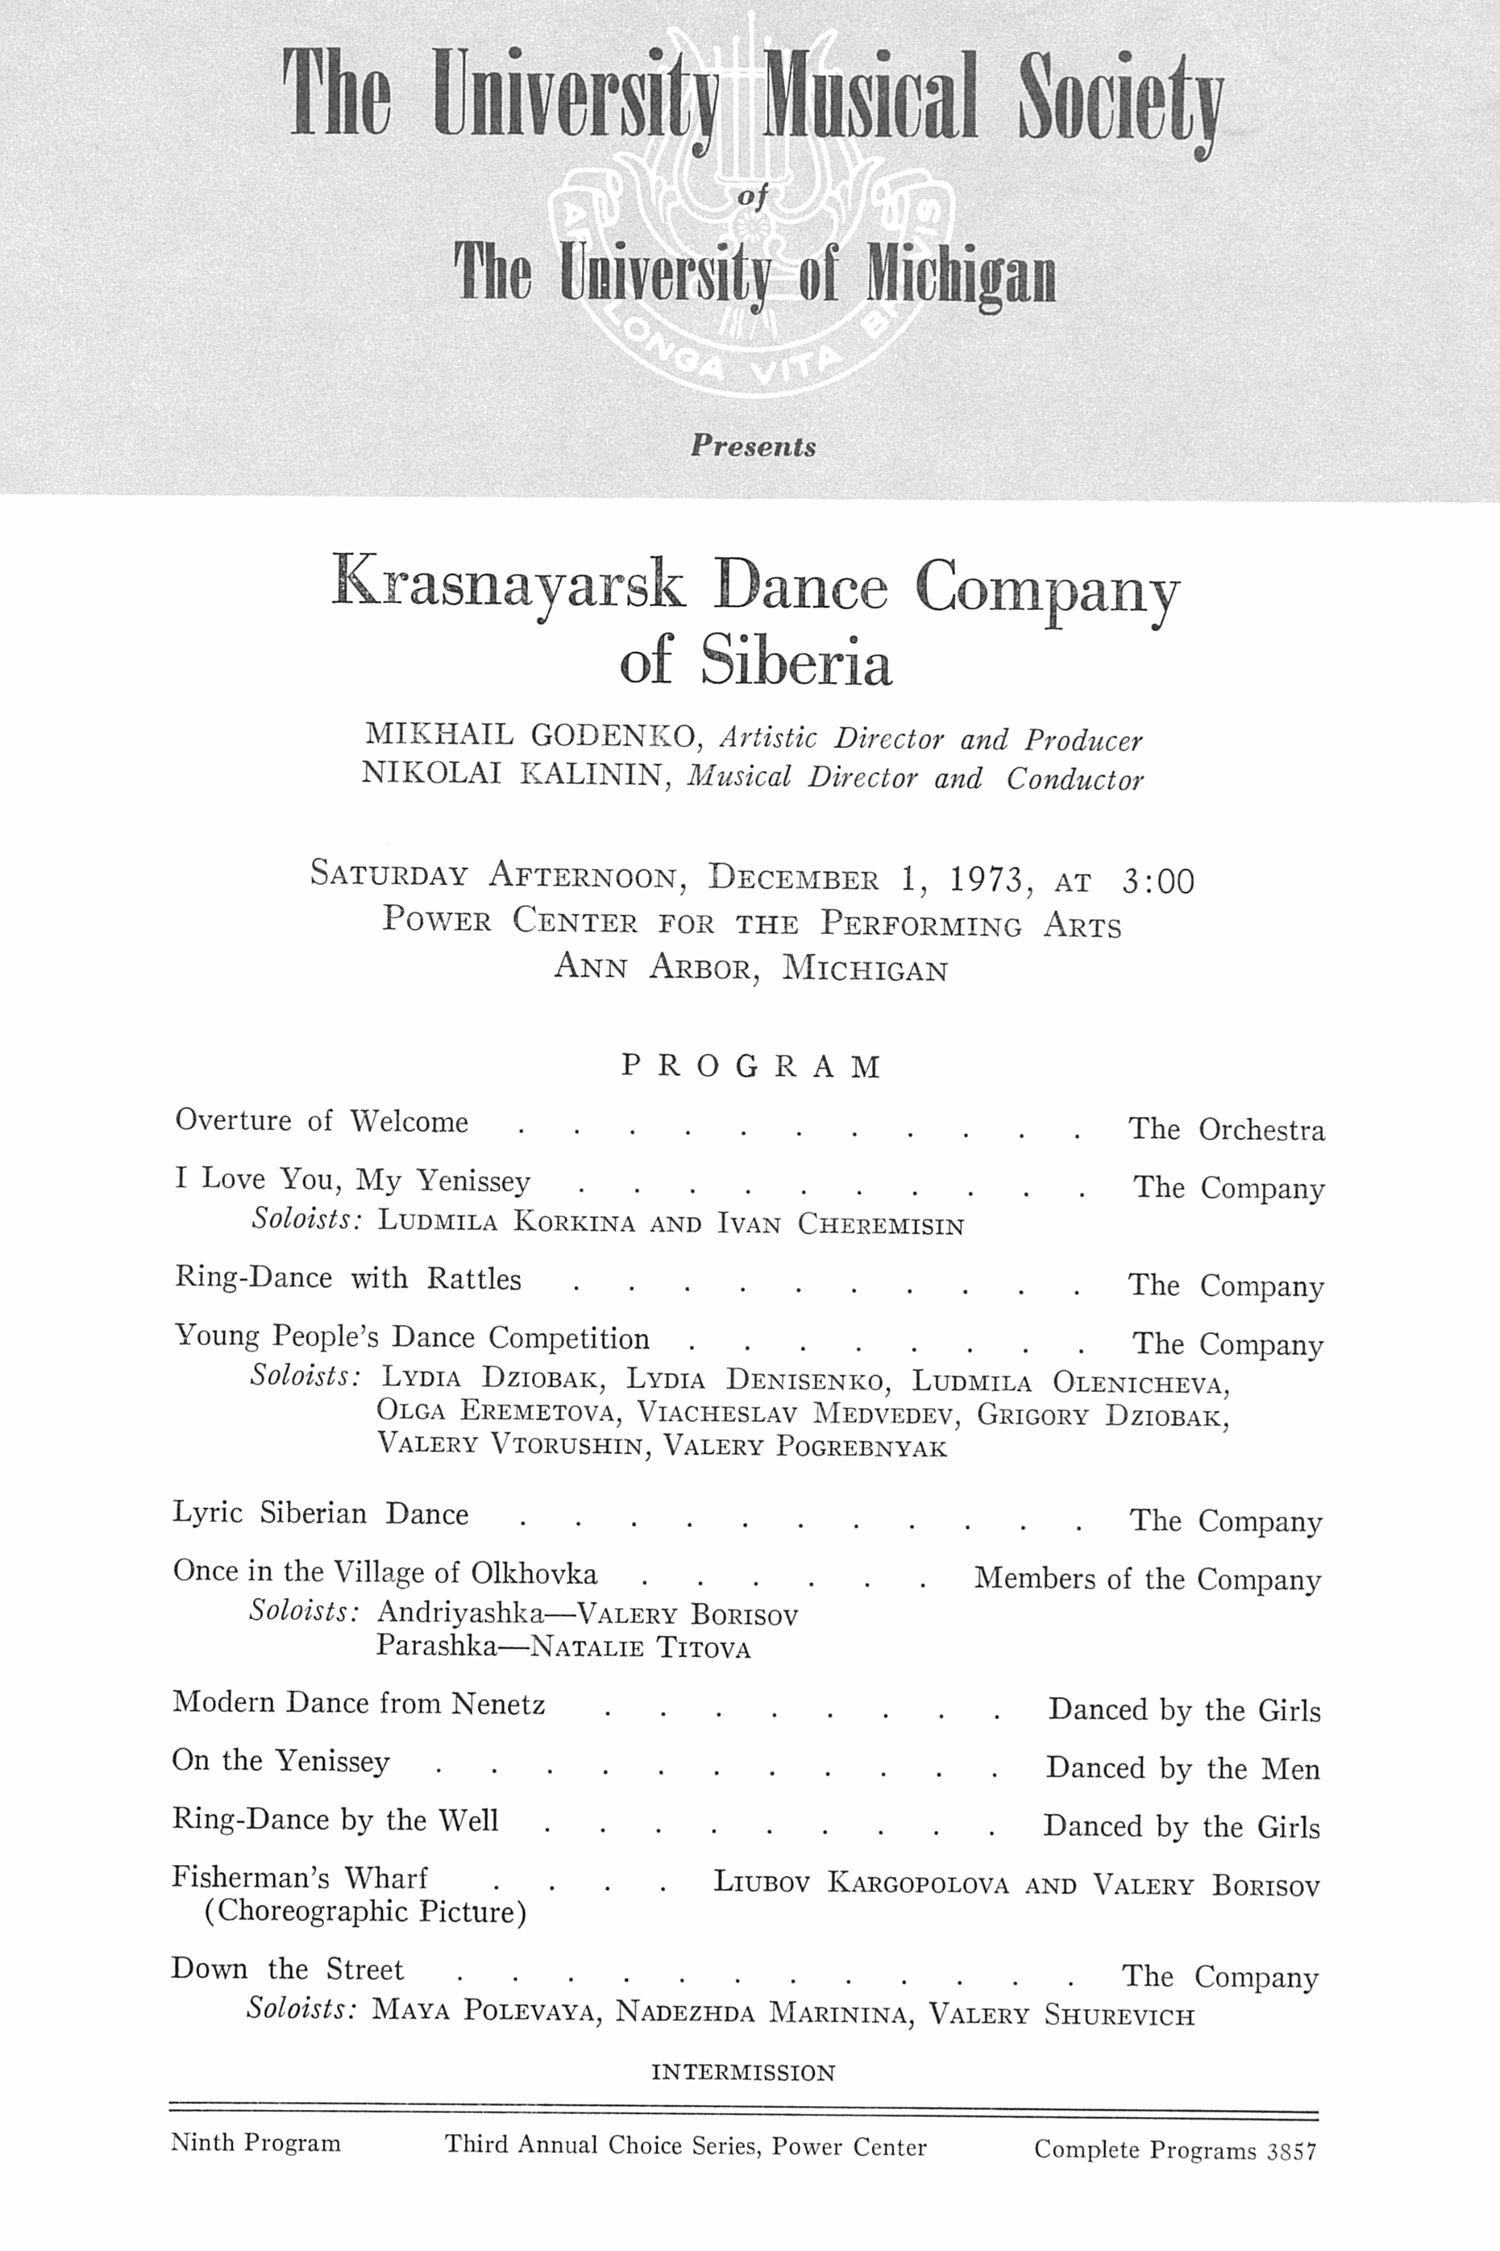 UMS Concert Program, December 1, 1973: Krasnayarsk Dance Company Of Siberia --  image